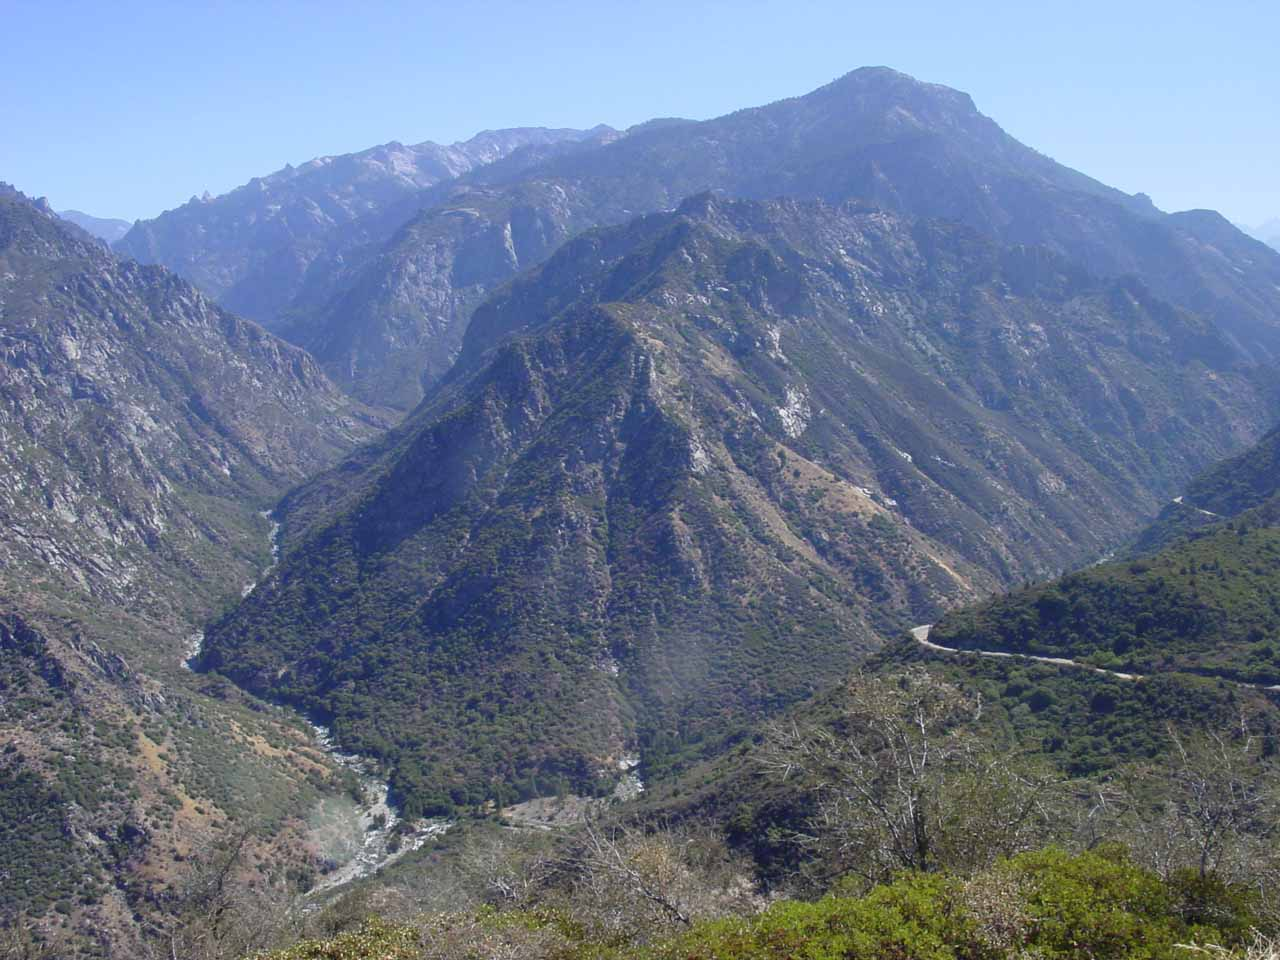 View of Junction Overlook from the Kings Canyon Highway